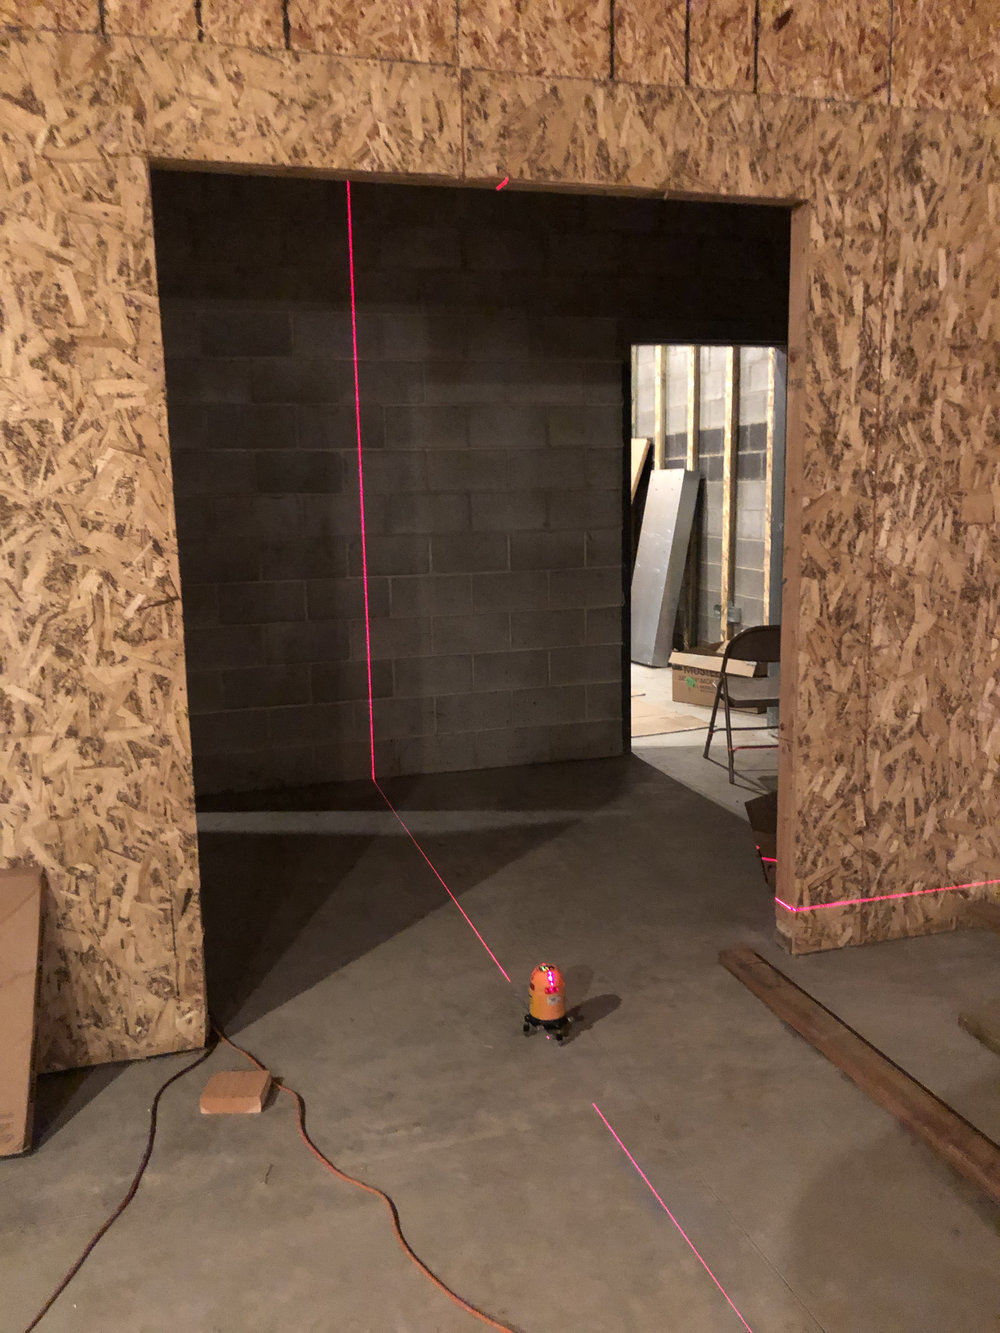 Using the laser to set the center line in studio 2 and start laying out the walls for the isolation booth.